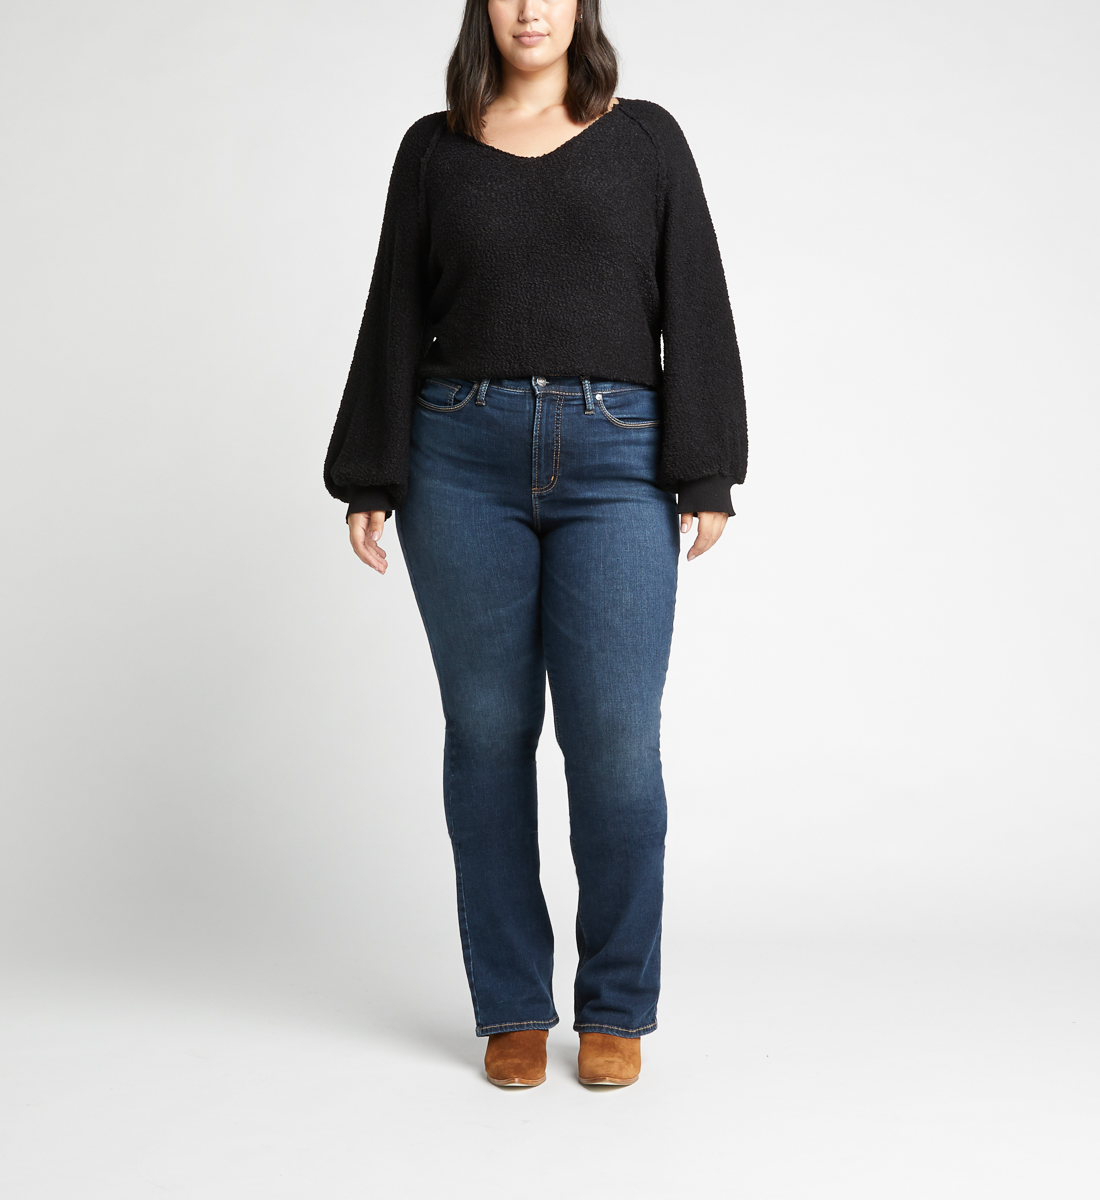 Calley High Rise Slim Bootcut Jeans Plus Size,Indigo Alt Image 1